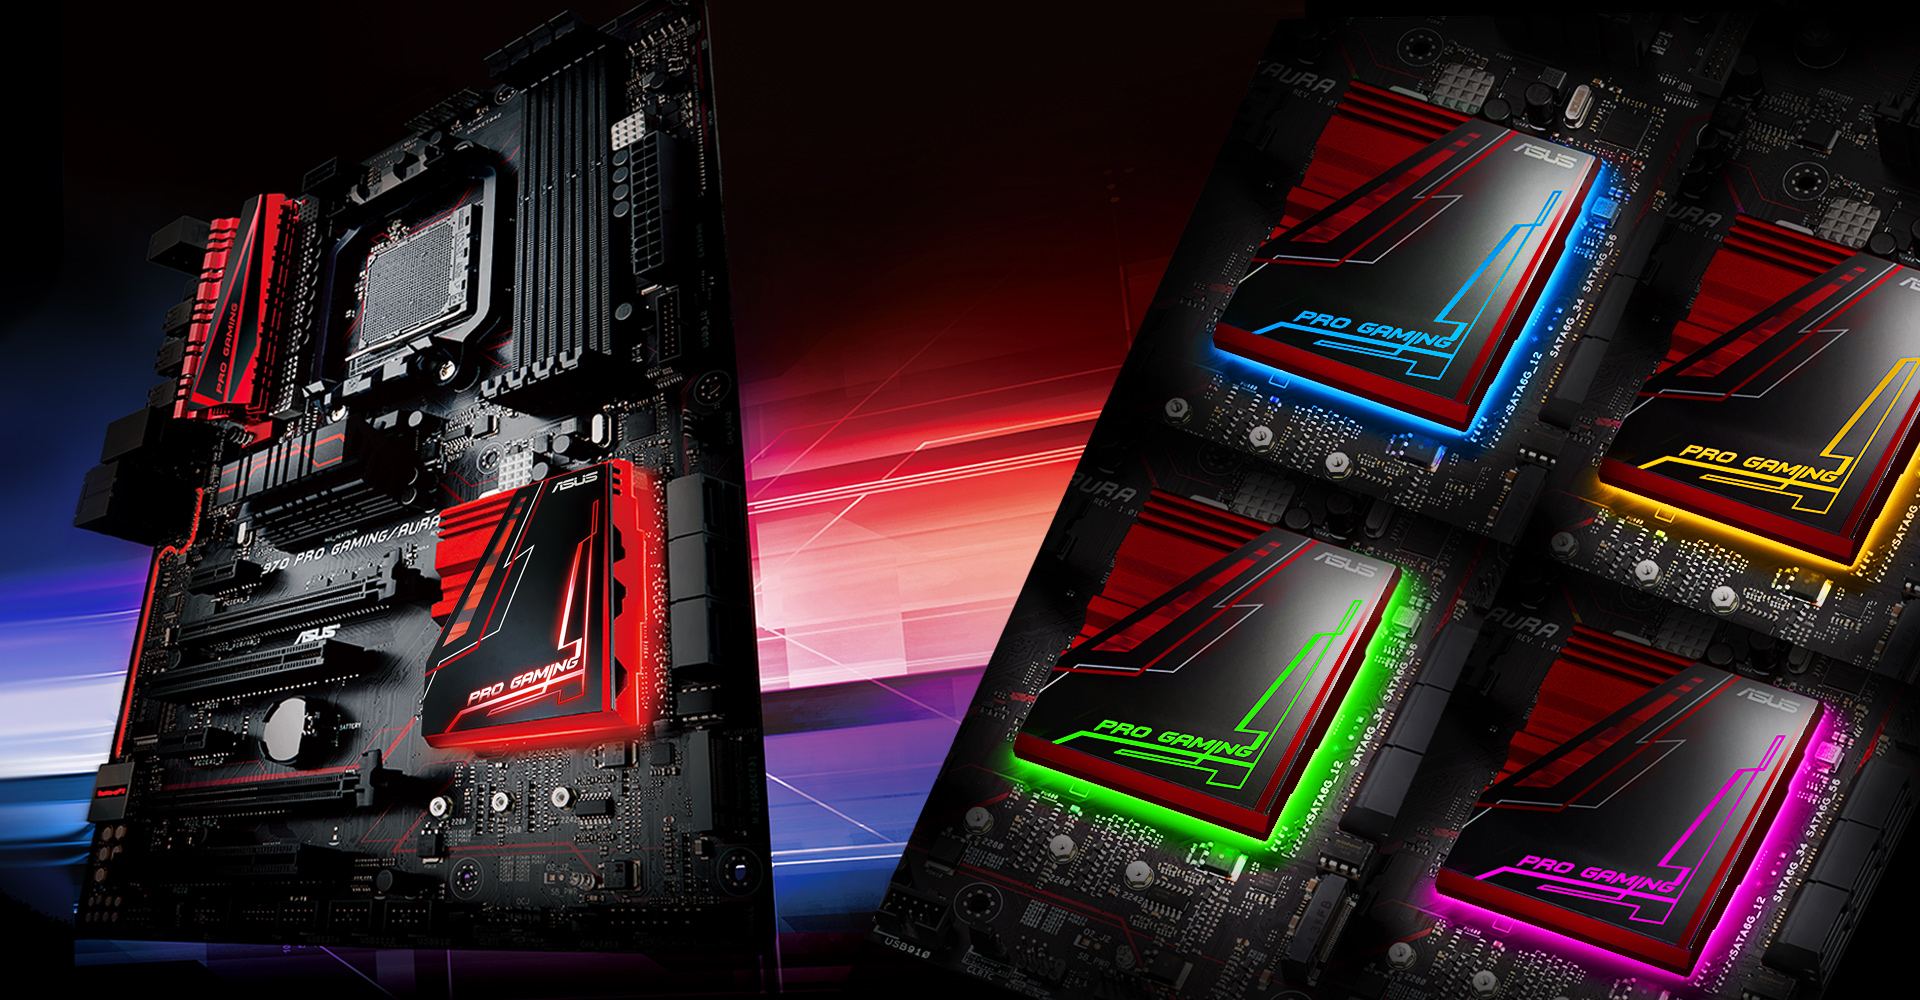 970 PRO GAMING/AURA | Motherboards | ASUS Global